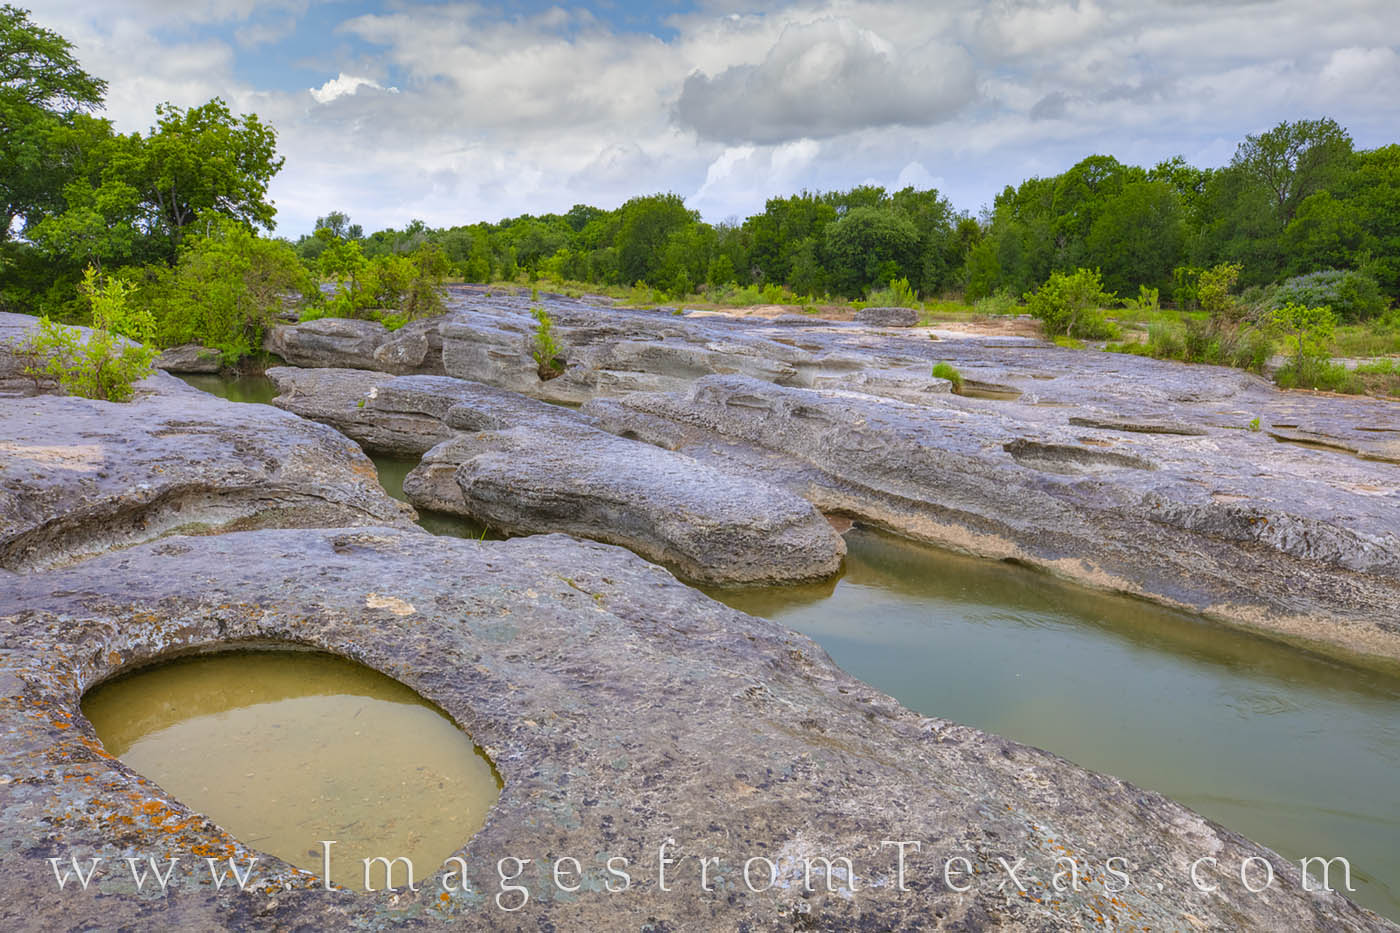 mckinney falls, lower falls, austin parks, urban park, texas state parks, summer, photo